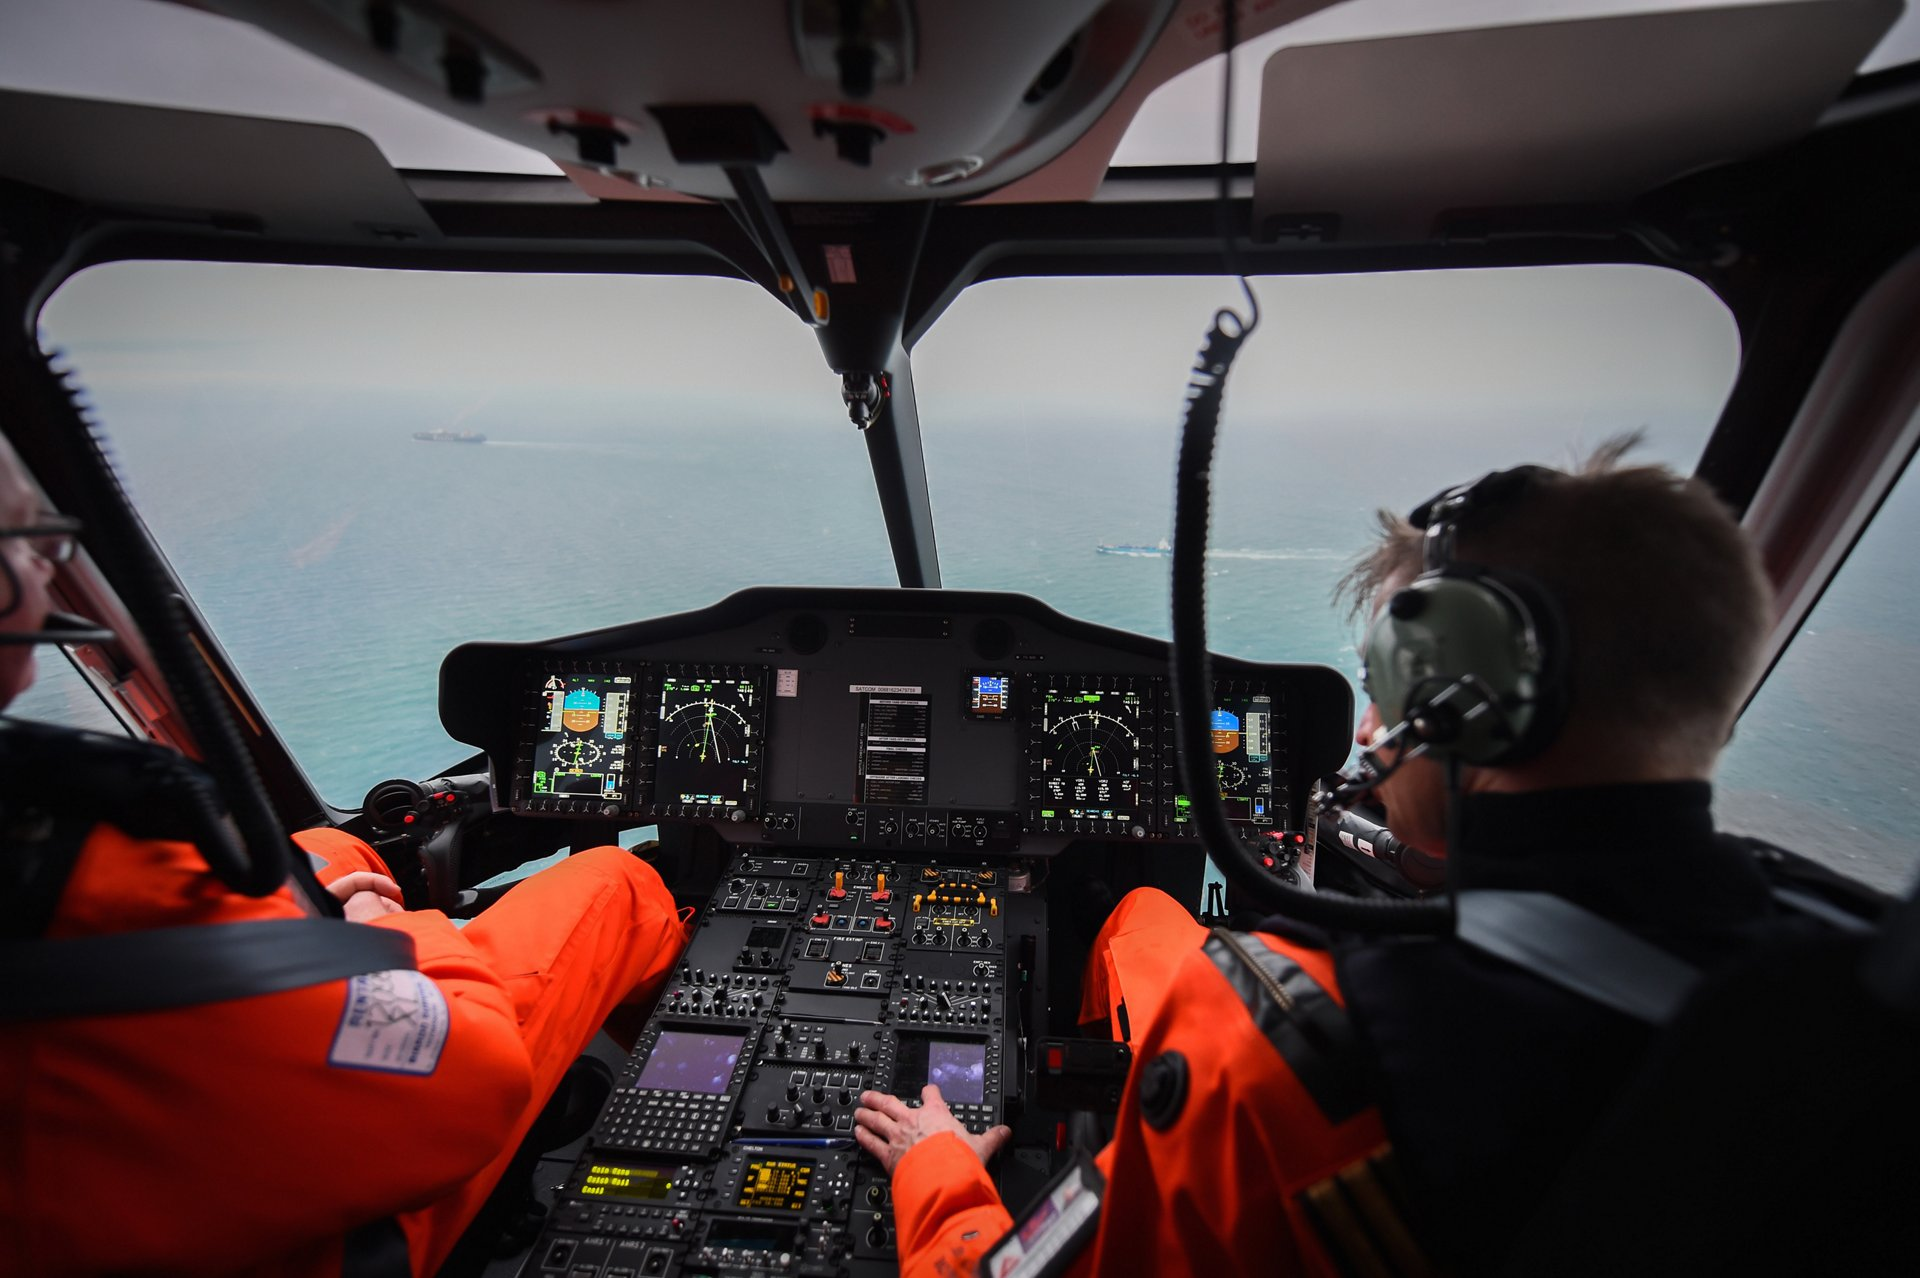 Airbus Helicopters has received EASA certification for the Rig'N Fly (Rig Integrated GPS approaches with eNhanced Flyability and safetY) for its H175 super medium helicopter.